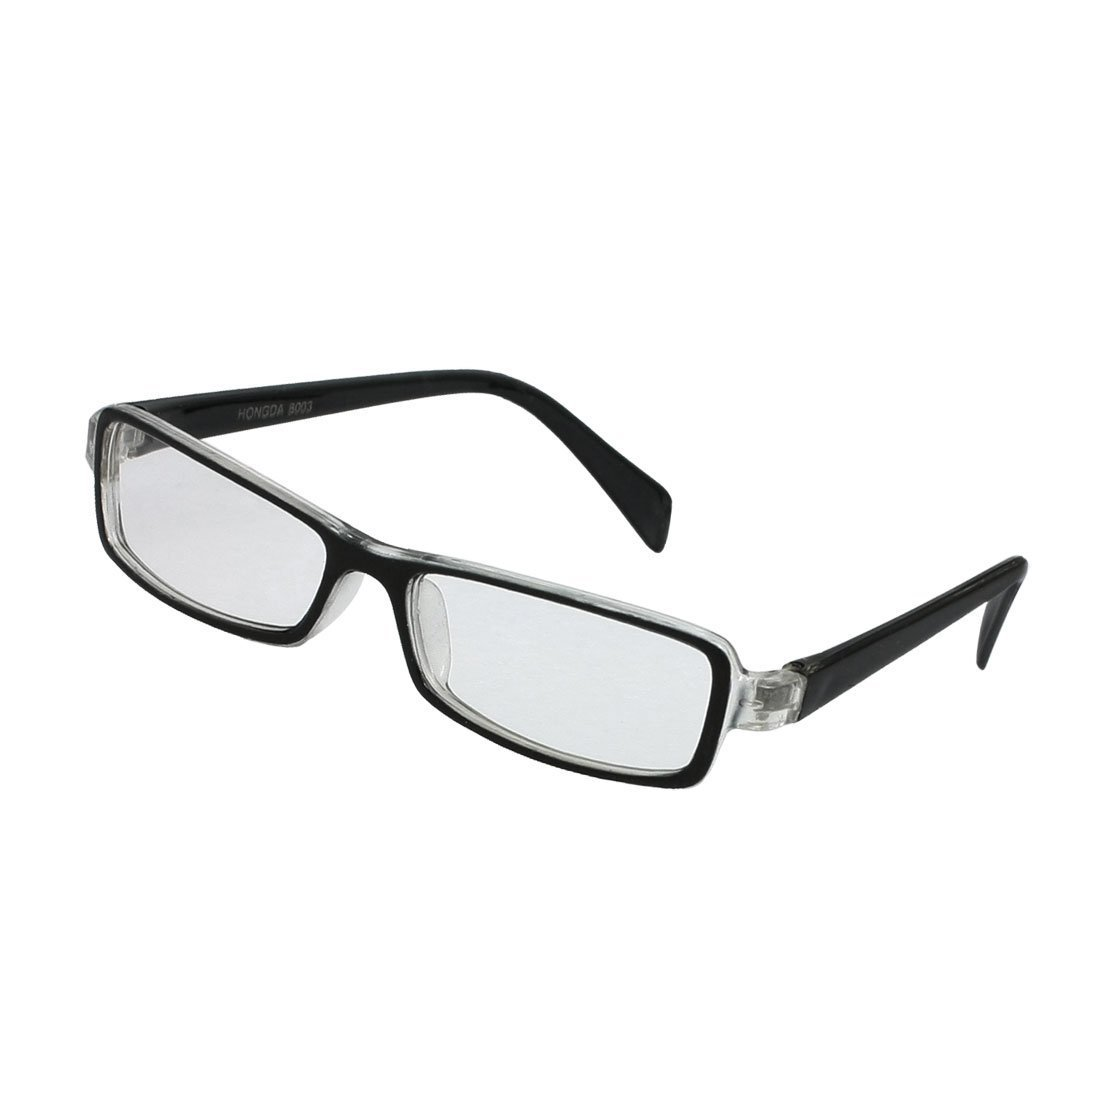 Cheap Rectangle Eyeglasses For Men, find Rectangle Eyeglasses For ...